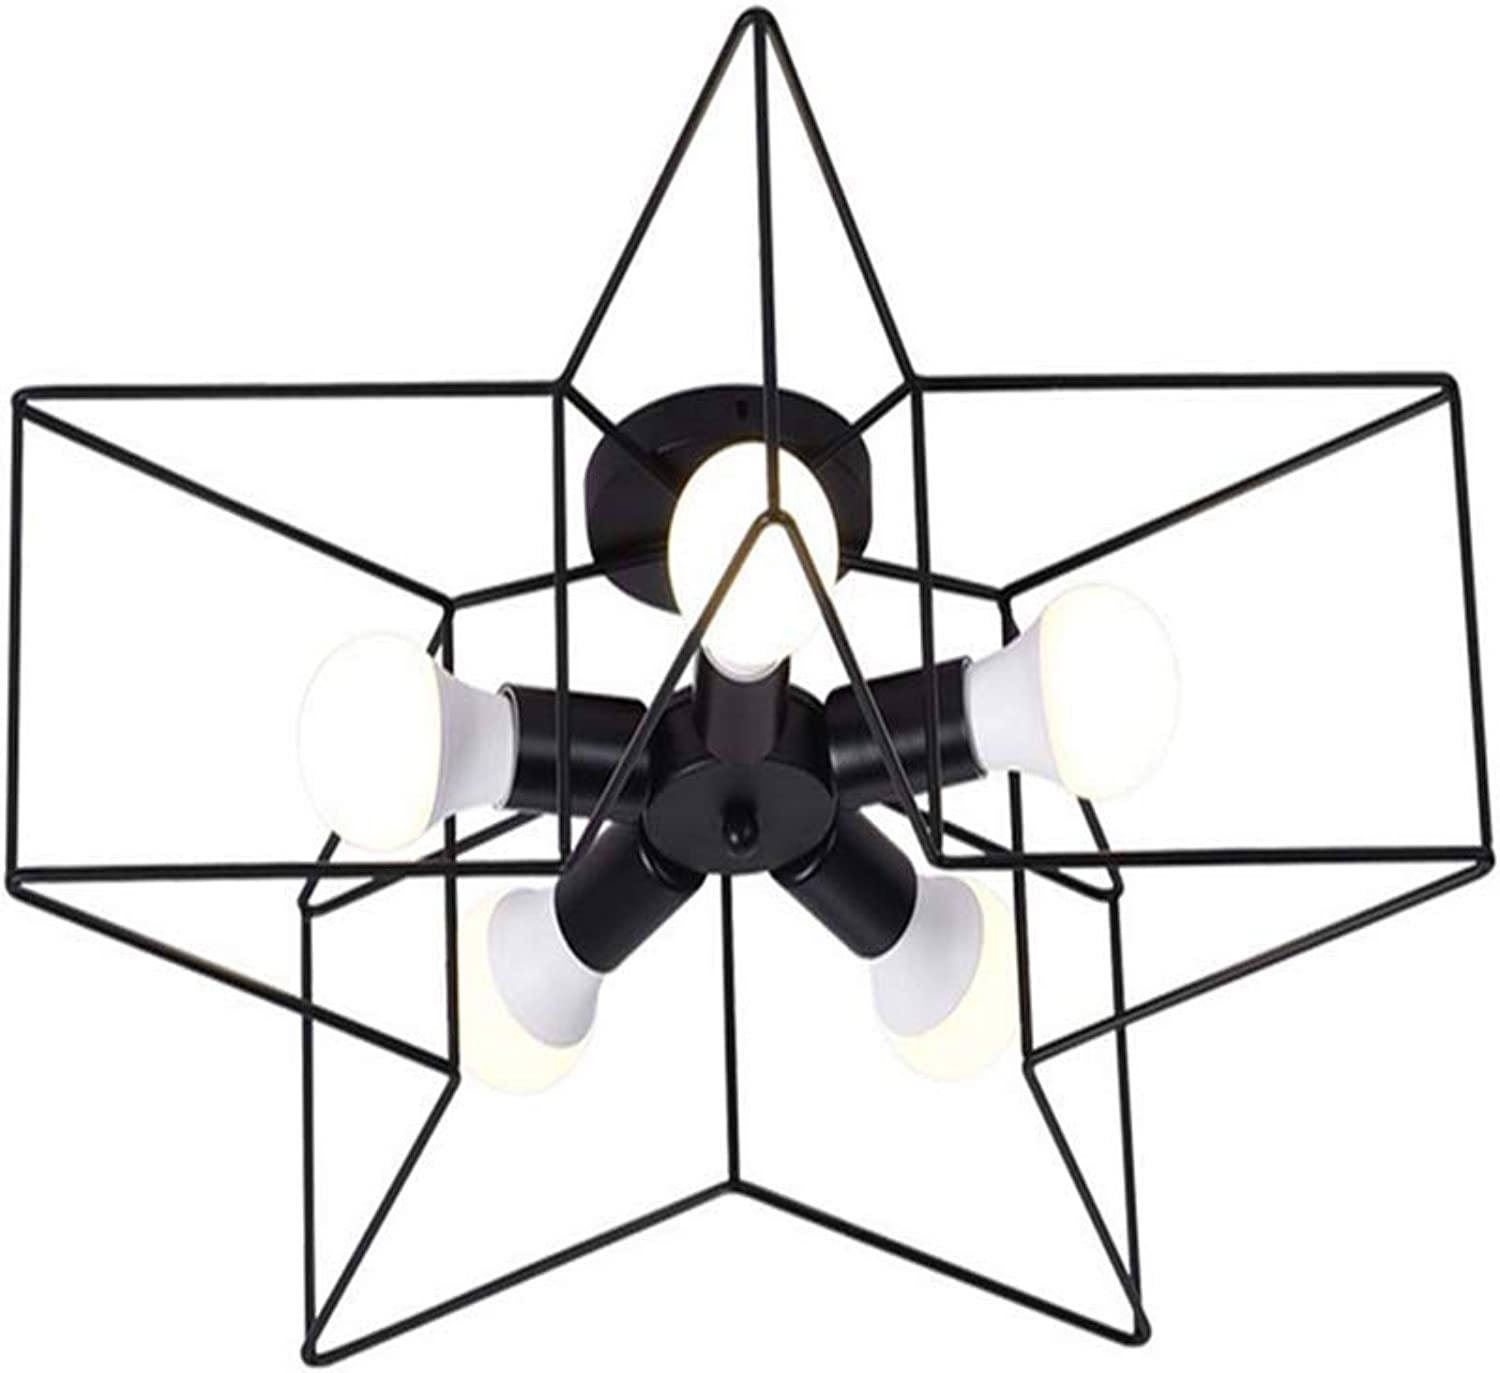 Lichtpentagram Ceiling Lamp Simple Design Iron Art Geometric Ceiling Light,schwarz,5Heads